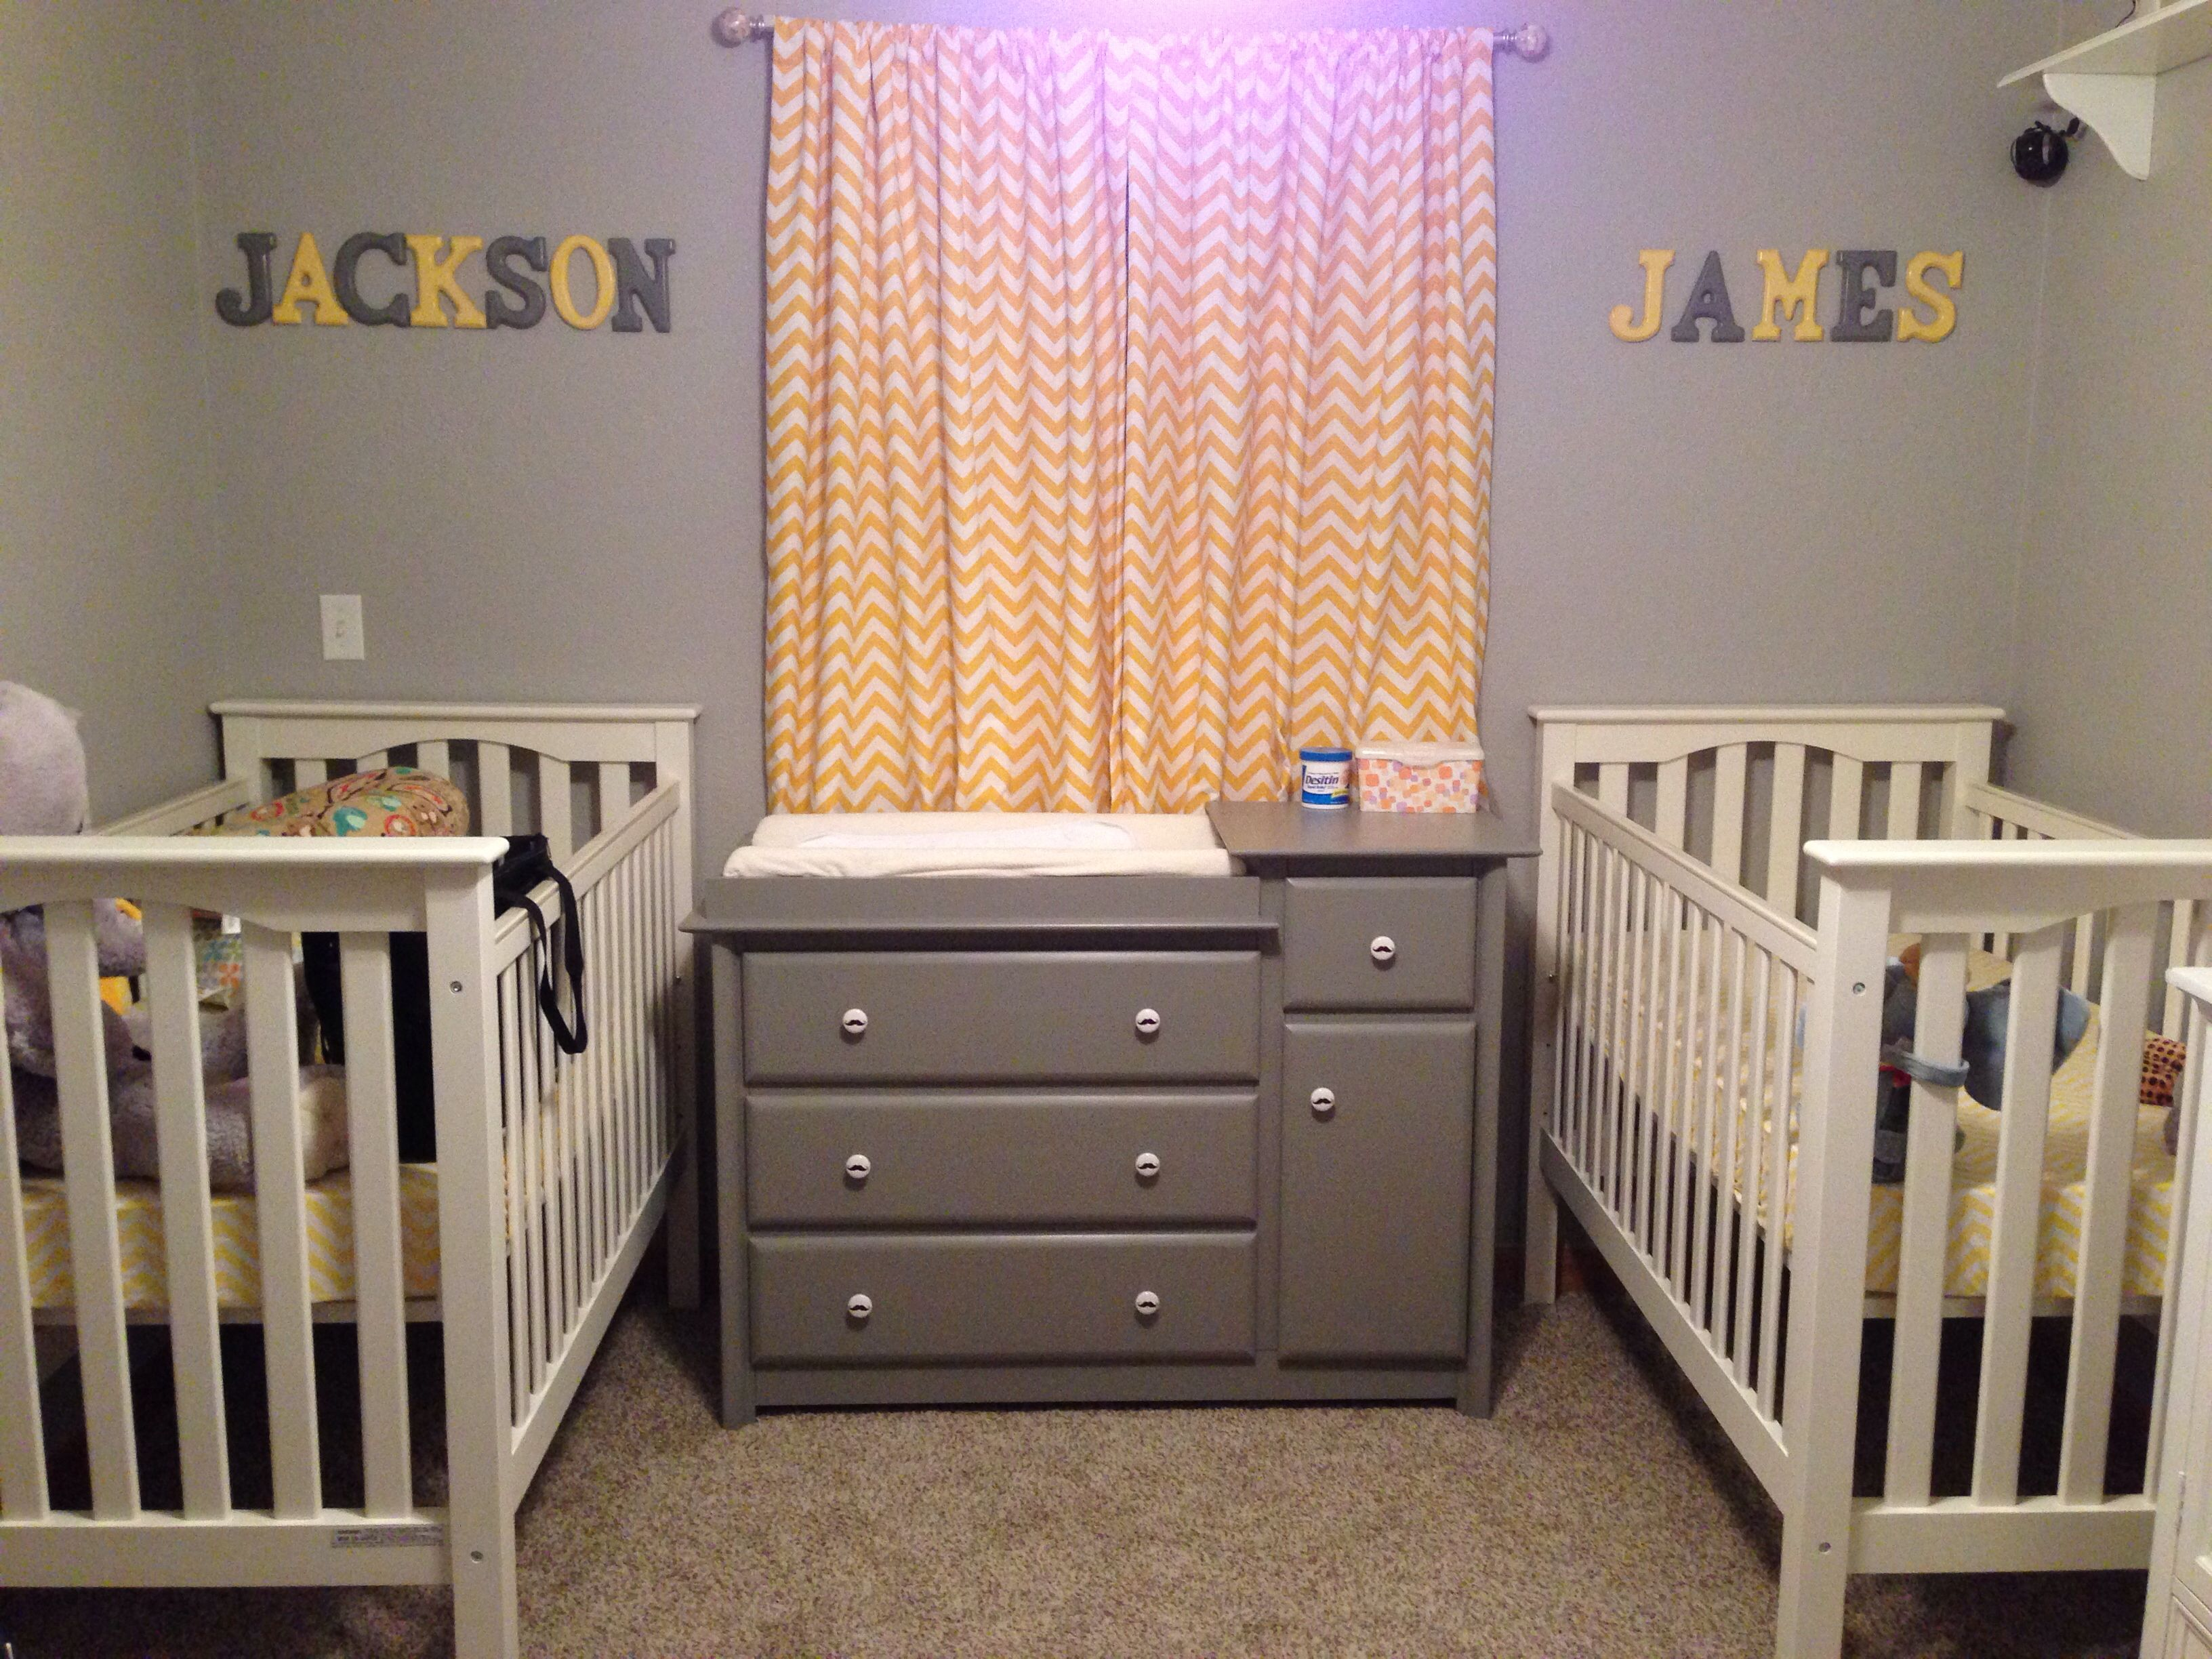 We Have A Similar Room Layout   Put Changing Table In Front Of Window  Flanked By Cribs.